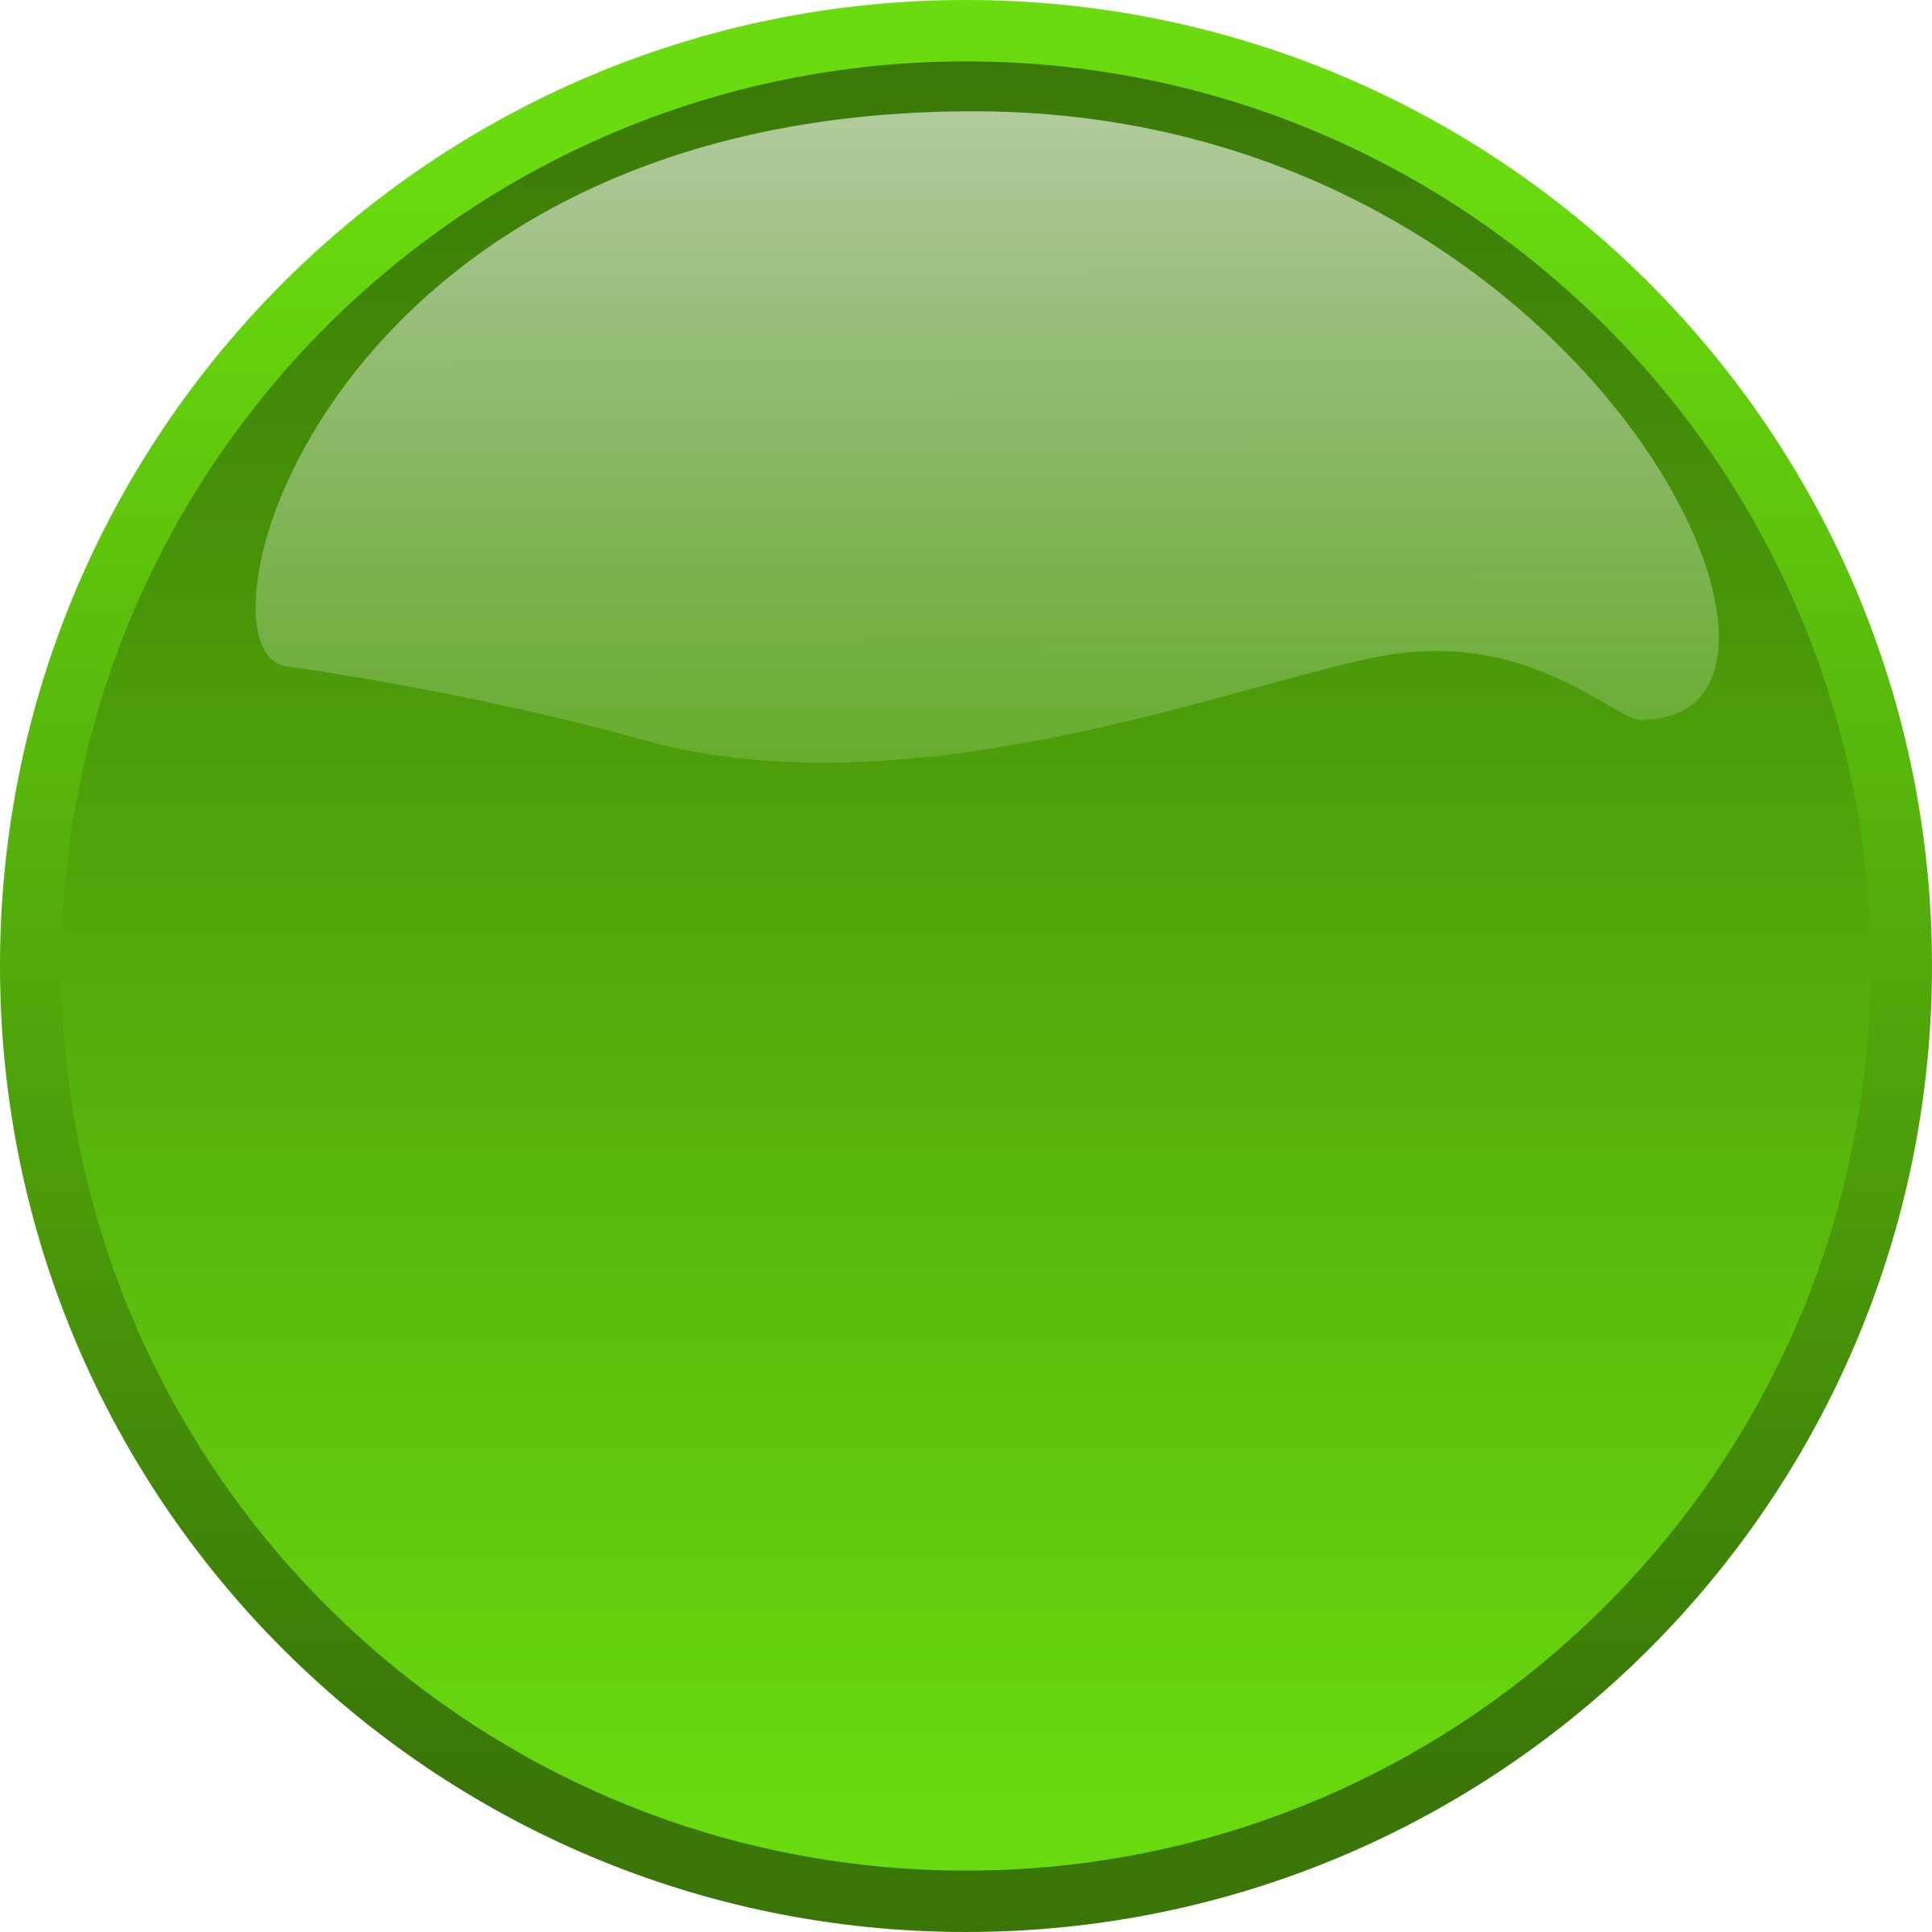 Button Green by bpcomp